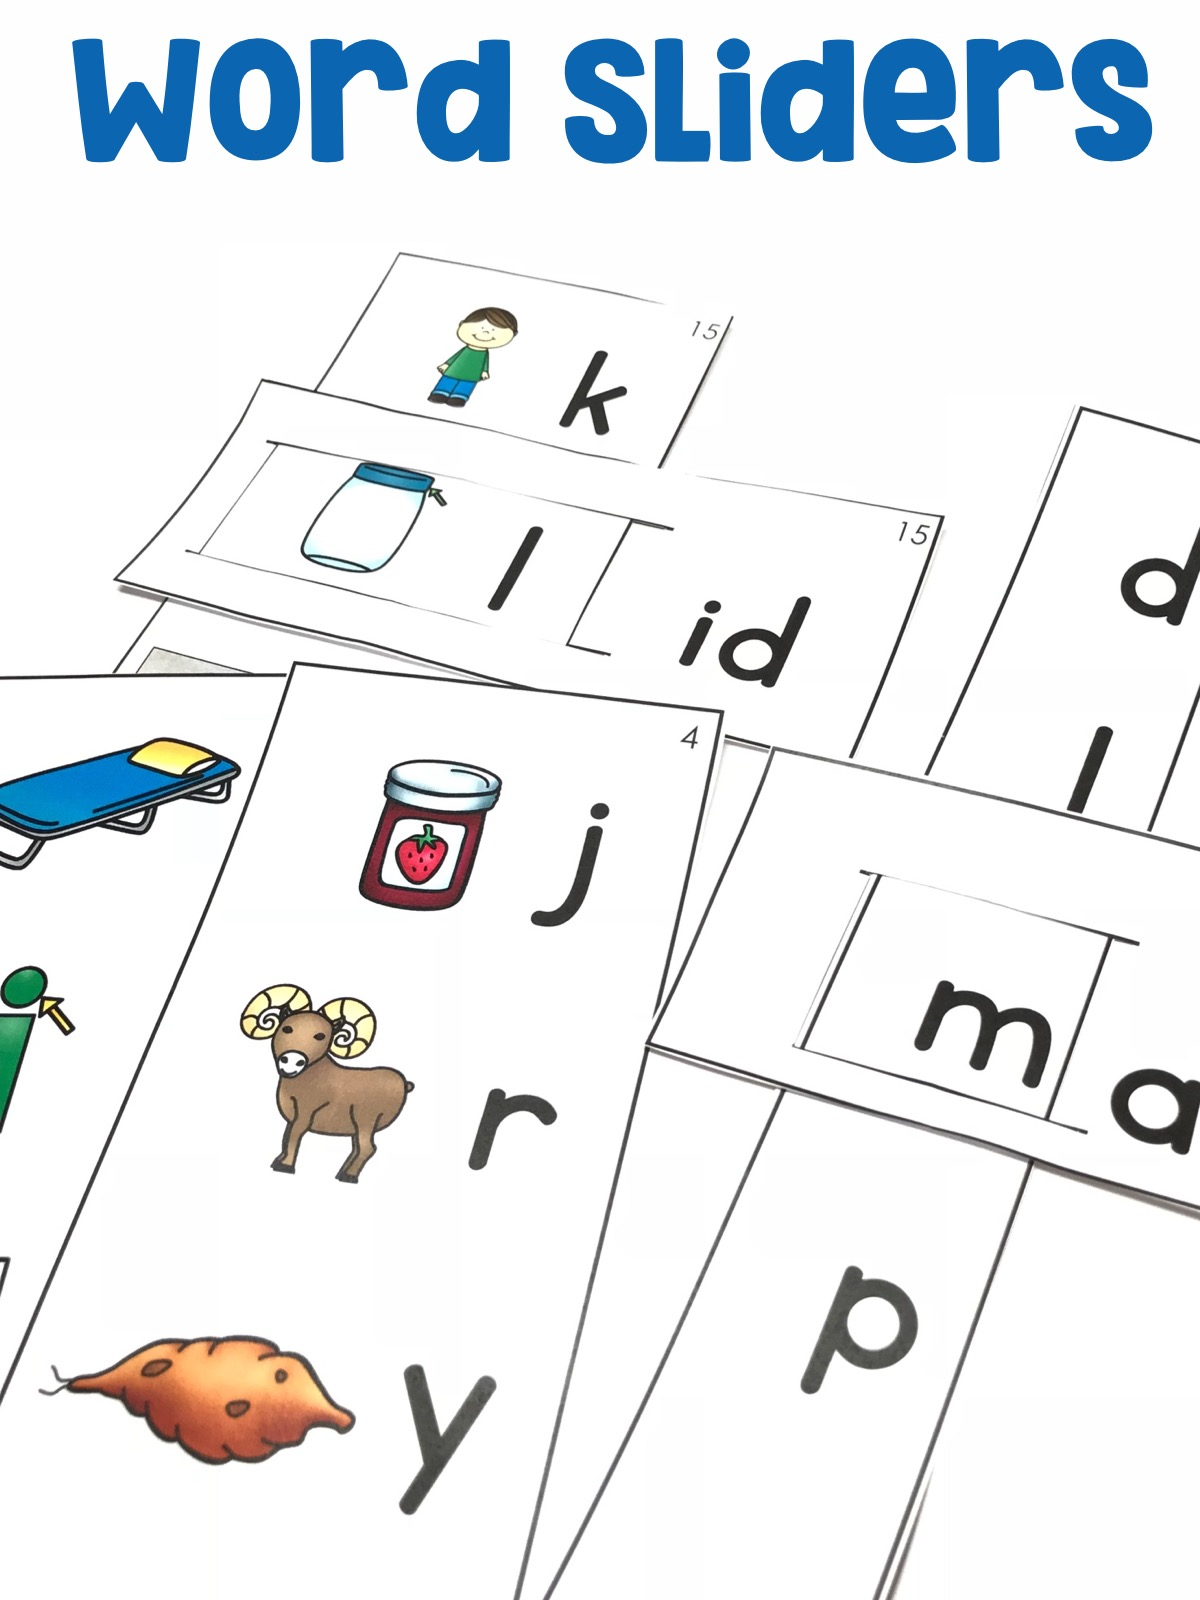 Students will add or substitute individual sounds (phonemes) in simple, one-syllable words to make new words using the word sliders.